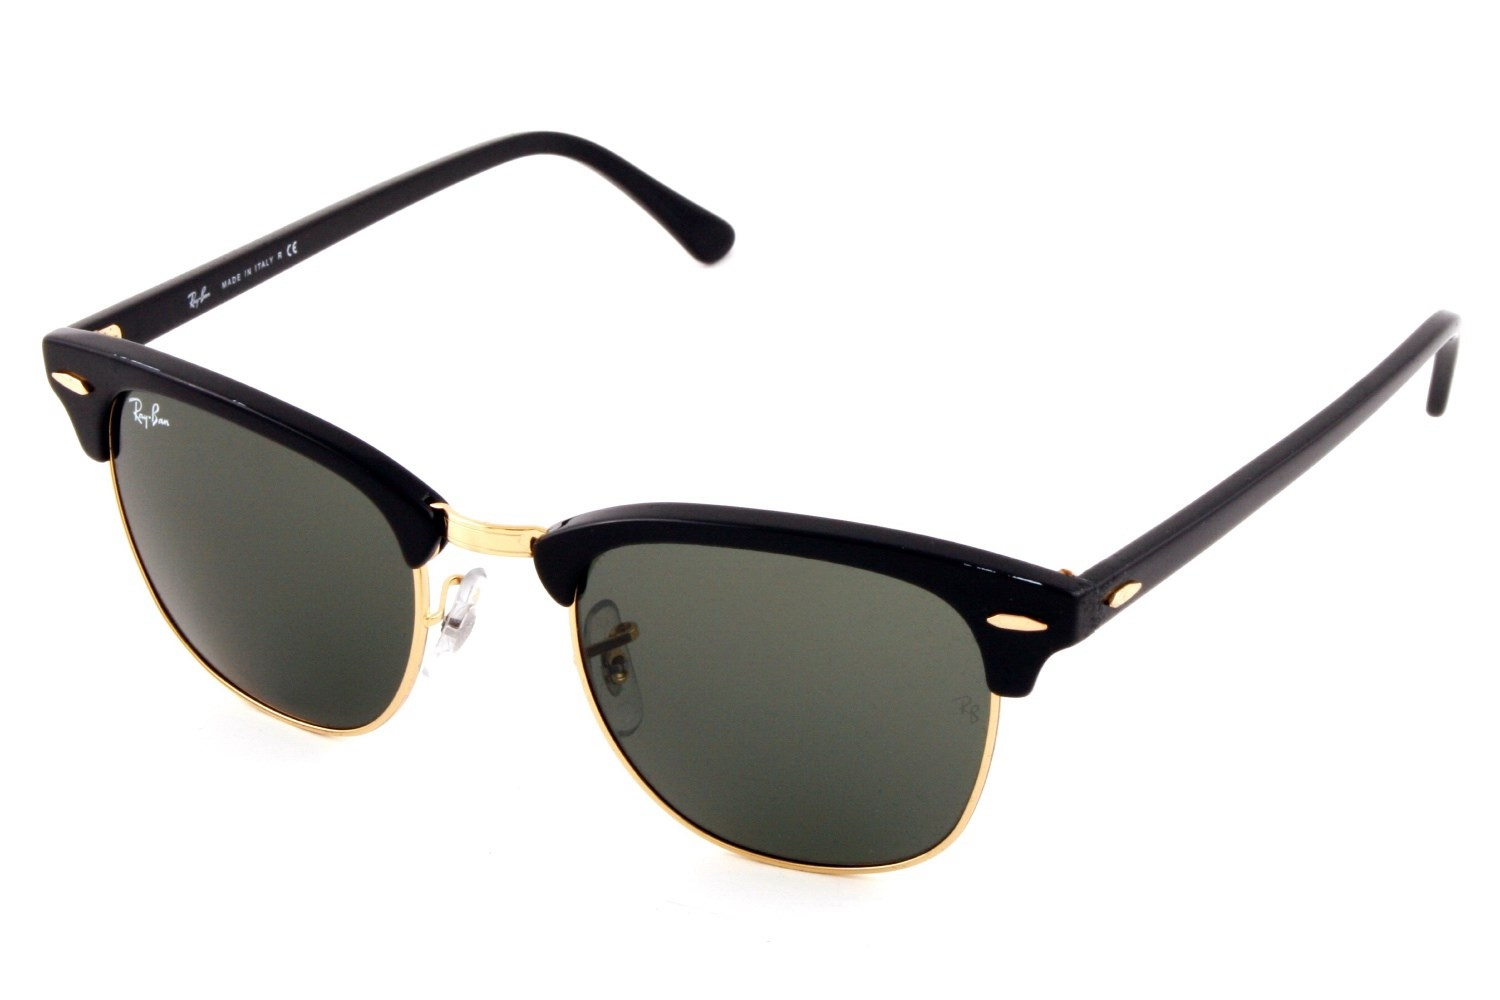 Ray-Ban RB 3016 51 Clubmaster Sunglasses